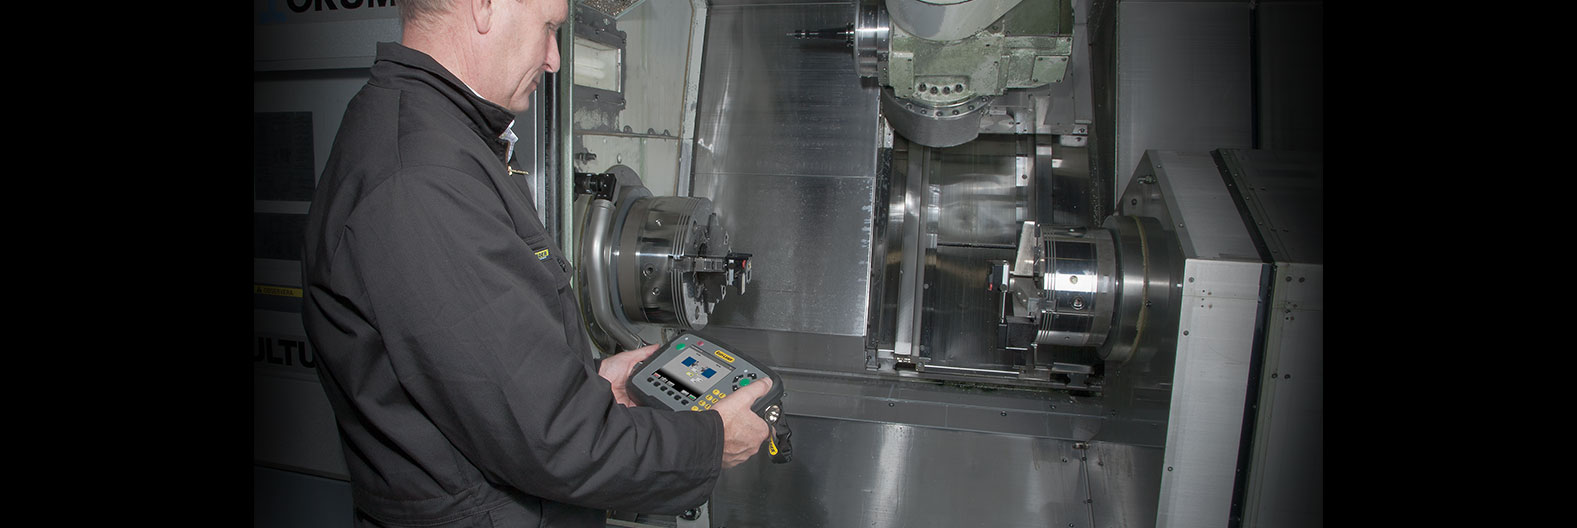 Complete System For Measurement. And Alignment Of Machine Tools